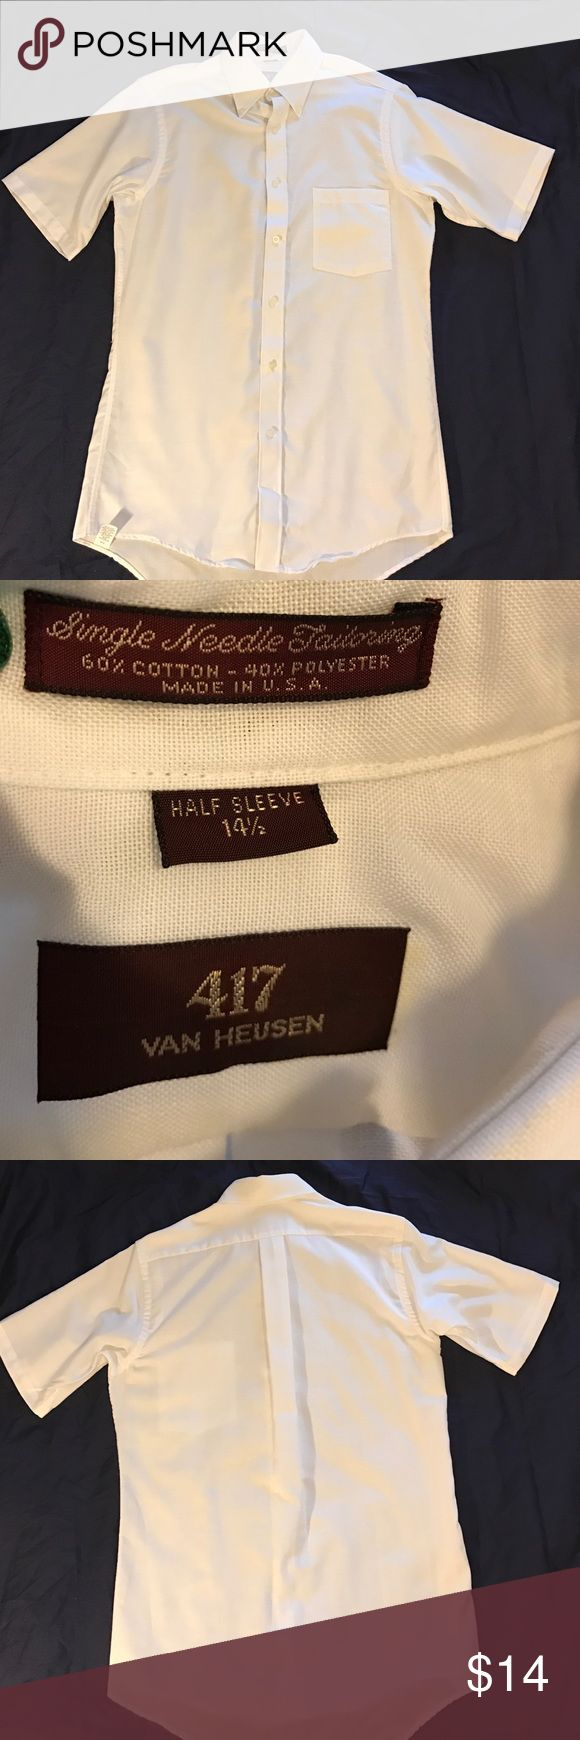 Van Heusen short sleeve dress shirt. Short sleeve button down shirt. Men's neck size 141/2. Left chest pocket. Worn once. No stains, missing buttons, or damage. Smoke free home. Van Heusen Shirts Dress Shirts